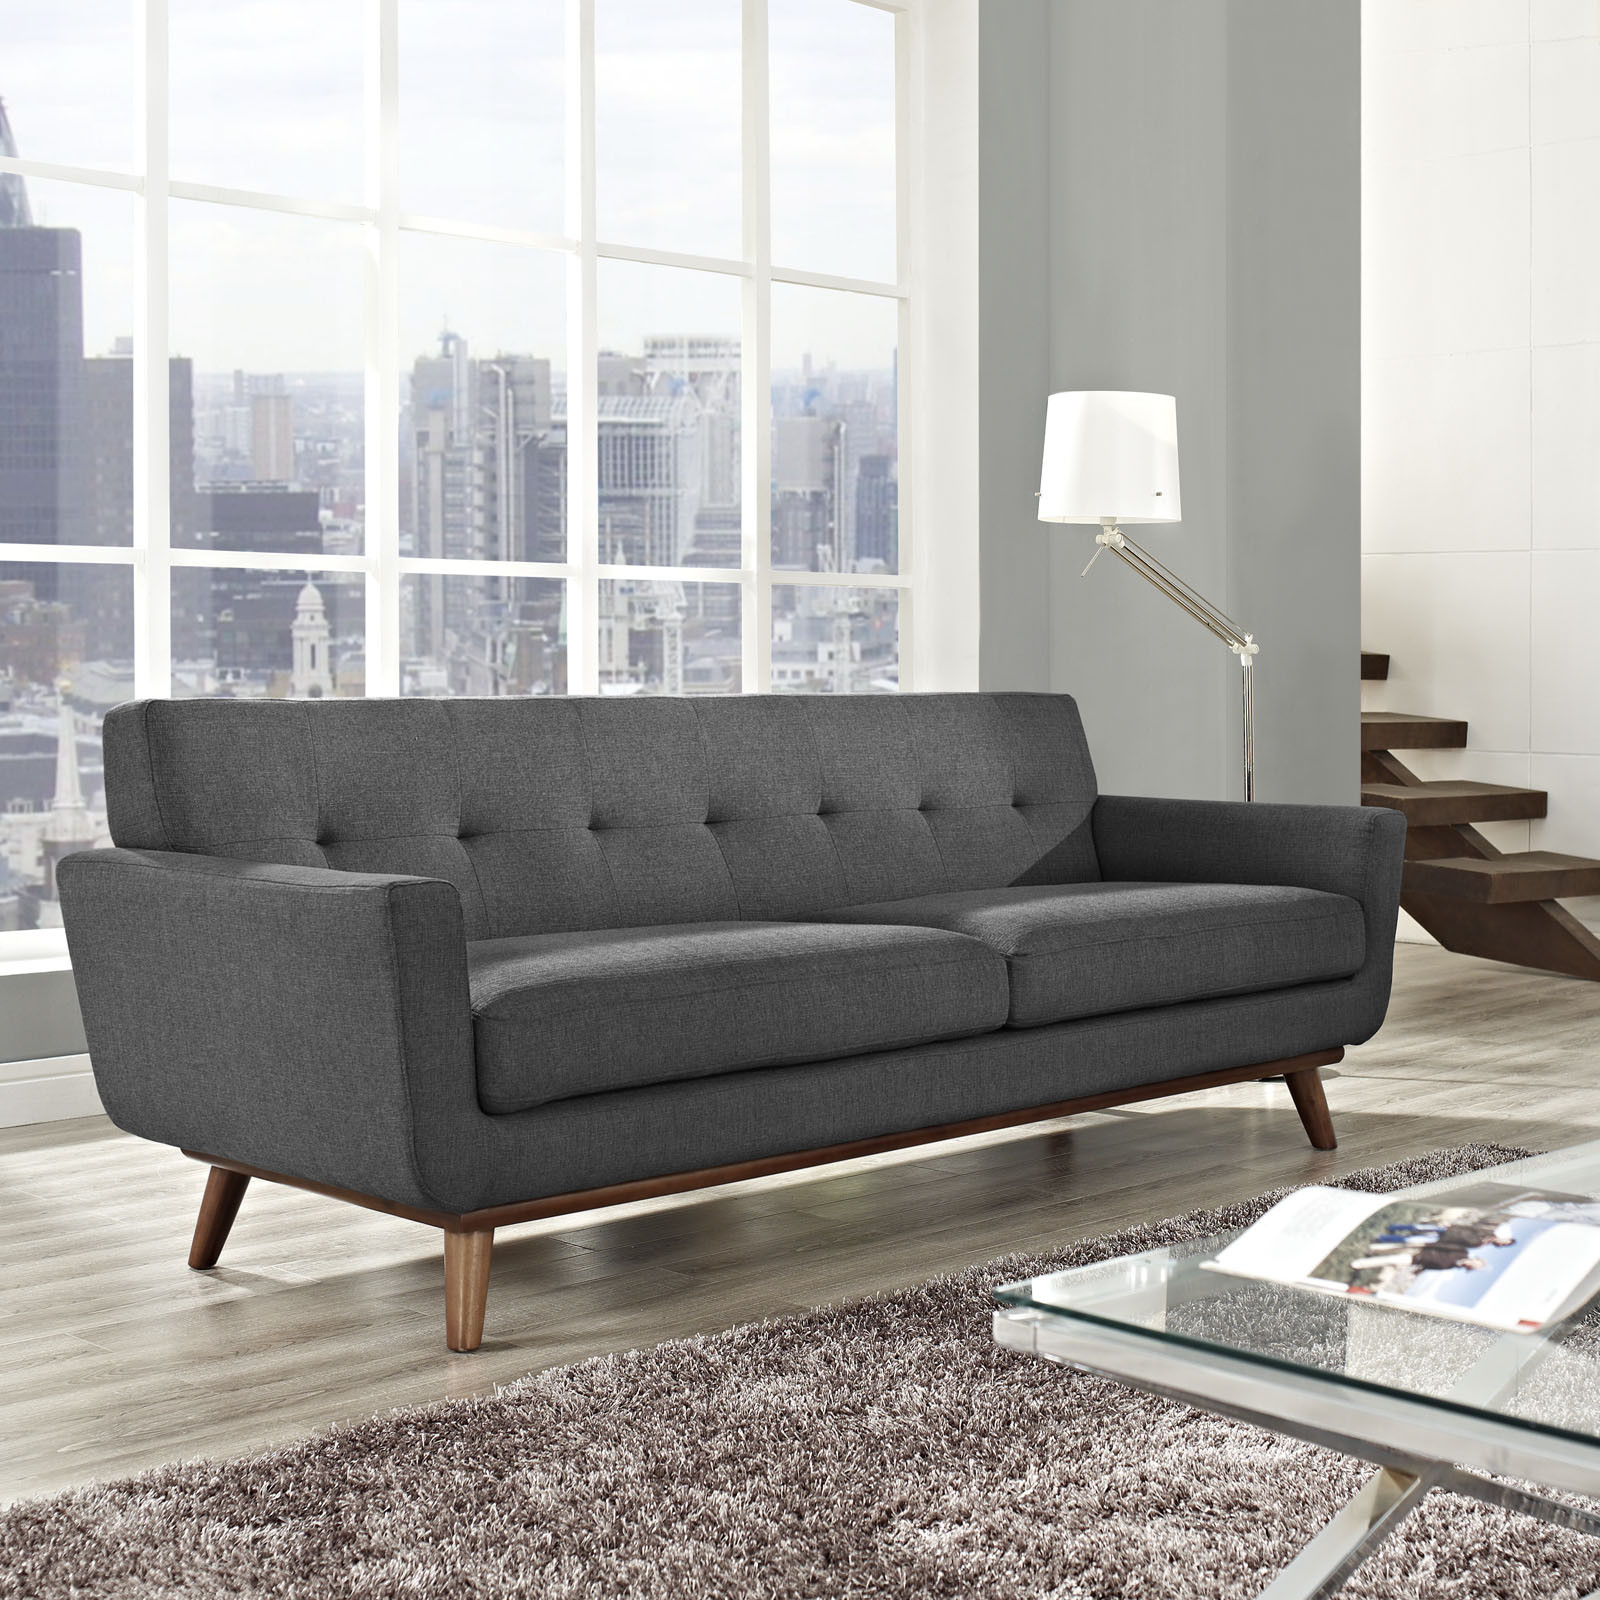 Source: ://froy.com & 5 Couch Styles for Your Living Room from Boho to Industrial.